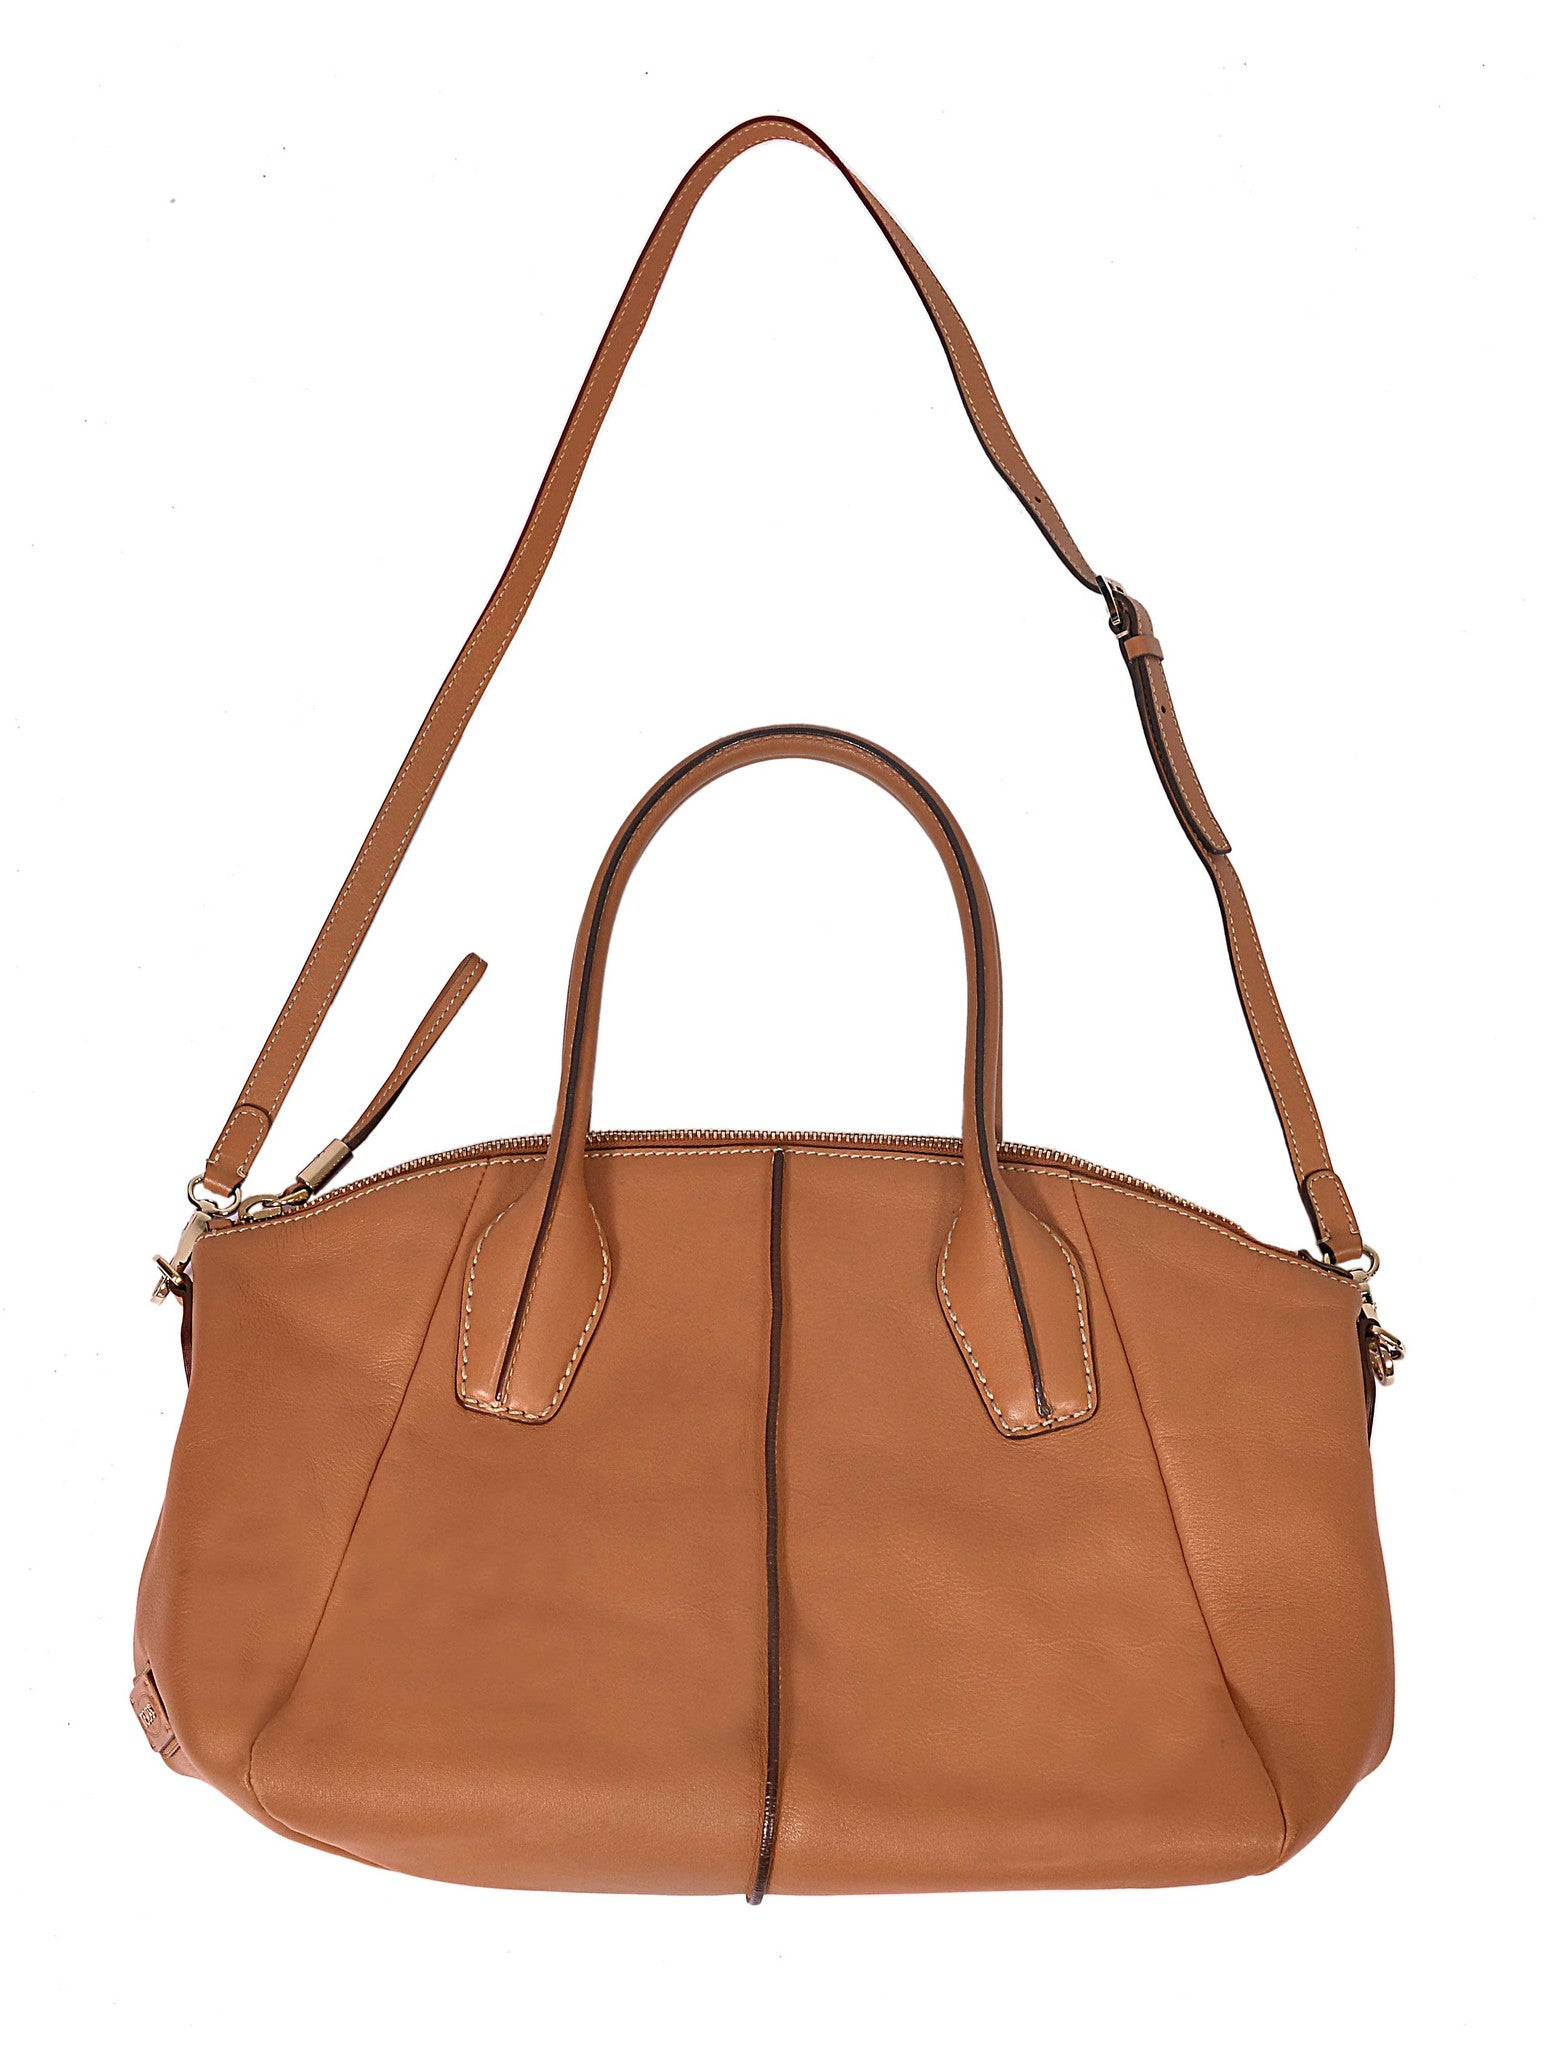 D-STYLING TOTE LEATHER HANDY BAG